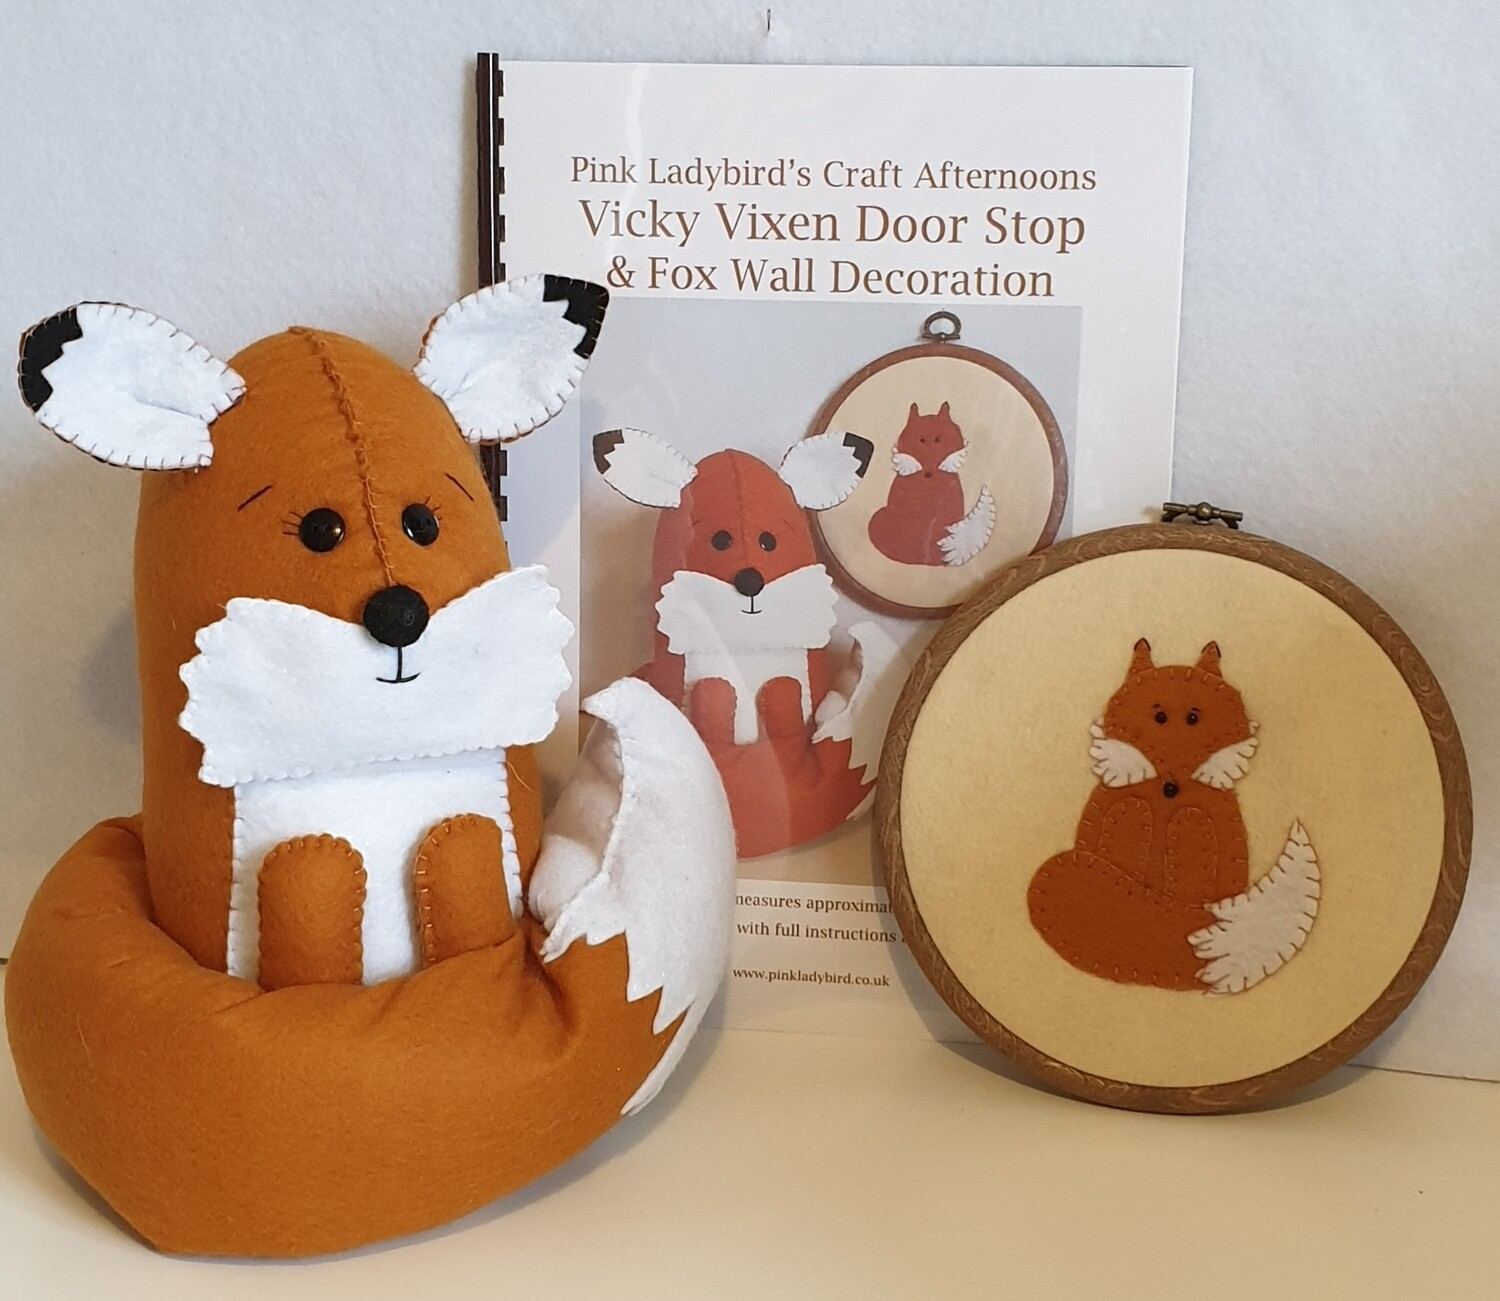 Sewing Pattern Booklet. Vicky Vixen door stop & fox wall decoration.